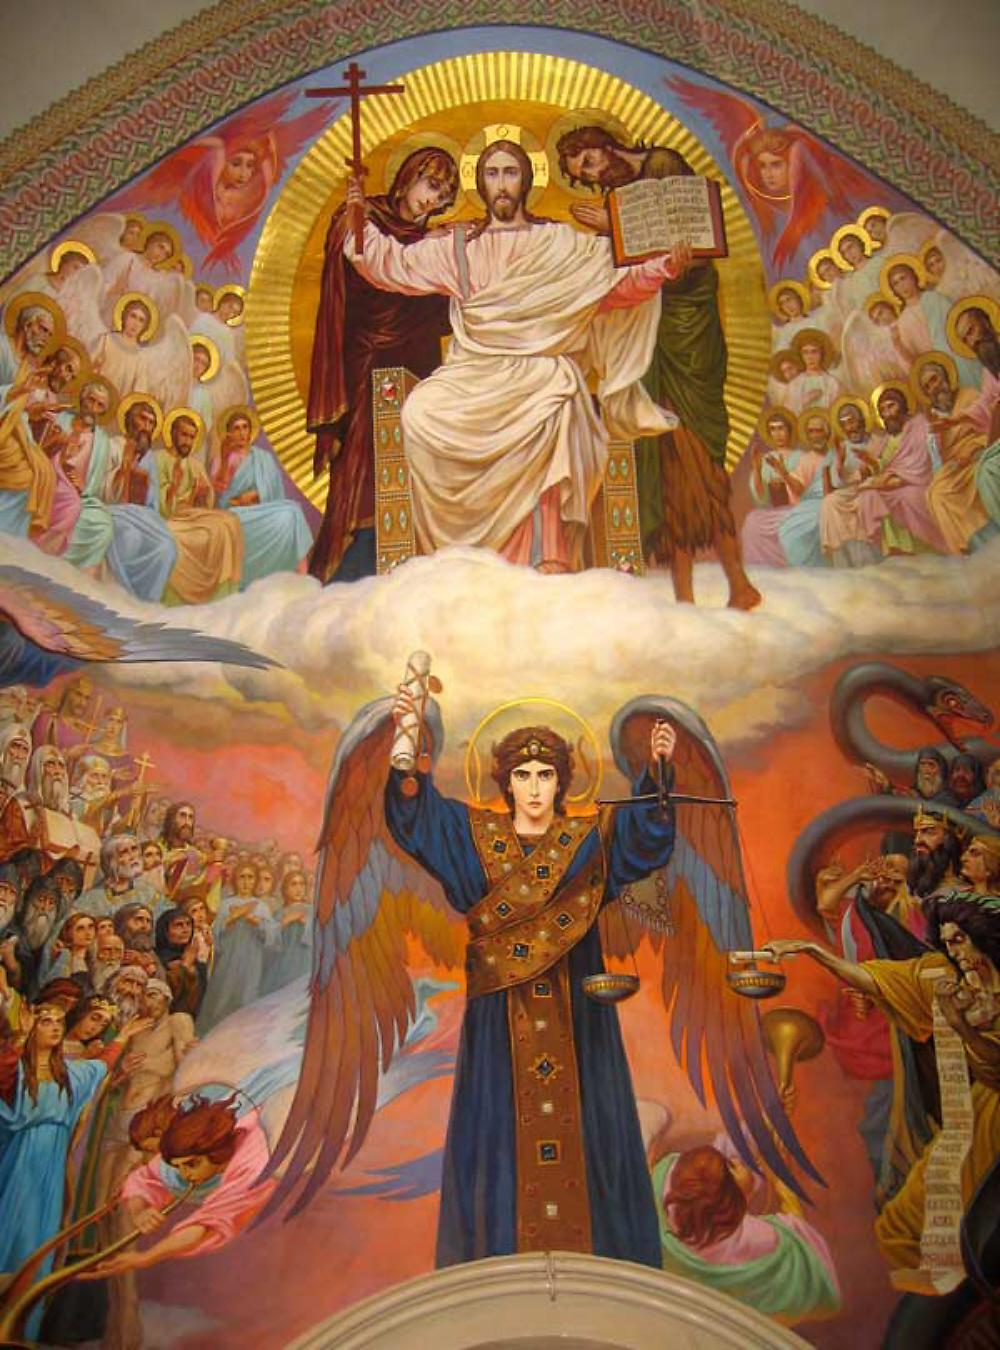 unknown-artist-the-last-judgement-church-of-the-mother-of-god-of-kazan-tolyatti-rf-2001.jpg